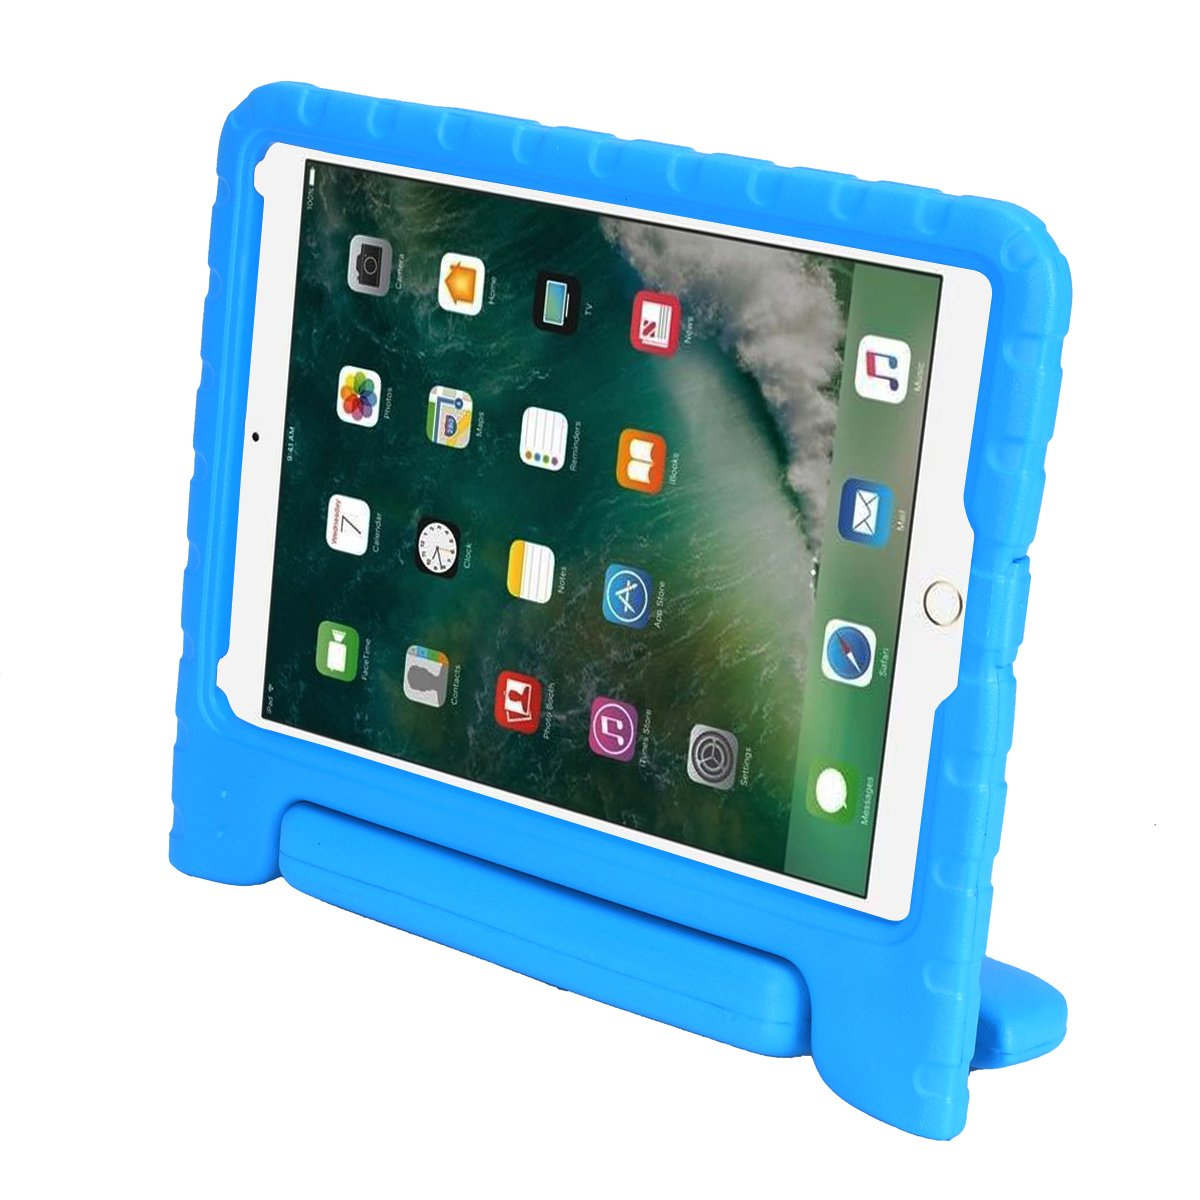 AVAWO Kids Case for New iPad 9.7 2017 & 2018 Release - Light Weight Shock Proof Convertible Handle Stand Friendly Kids Case for iPad 9.7-inch 2017 & 2018 Latest Gen (iPad 5th & 6th Gen) – Blue